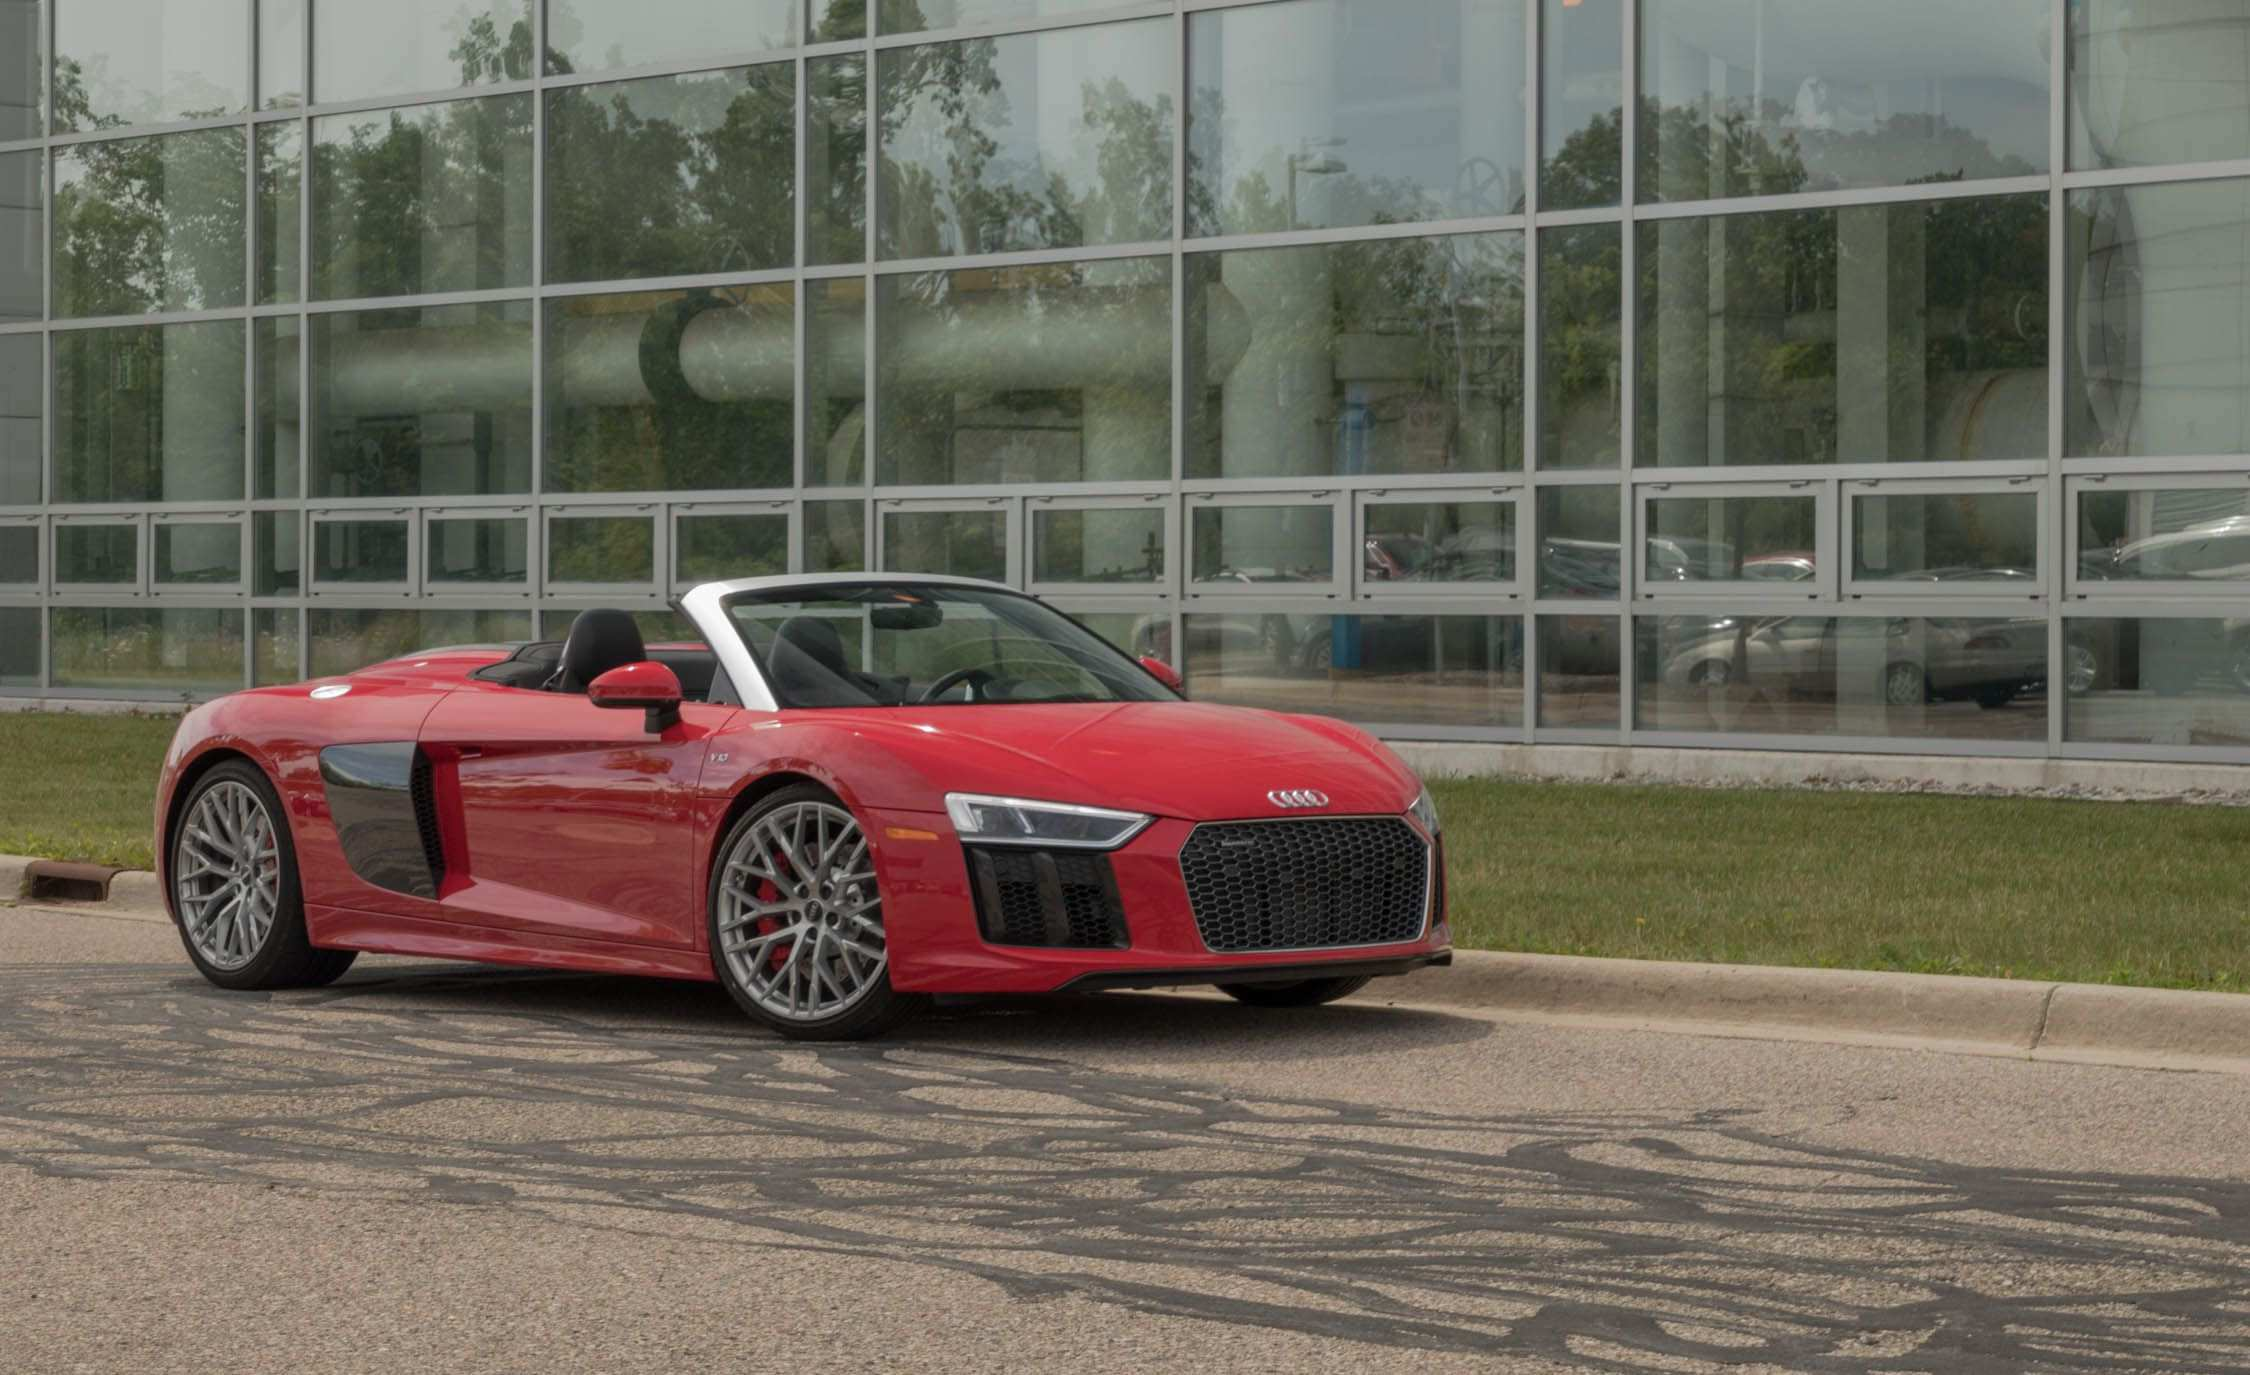 37 The 2019 Audi R8 LMXs Pricing